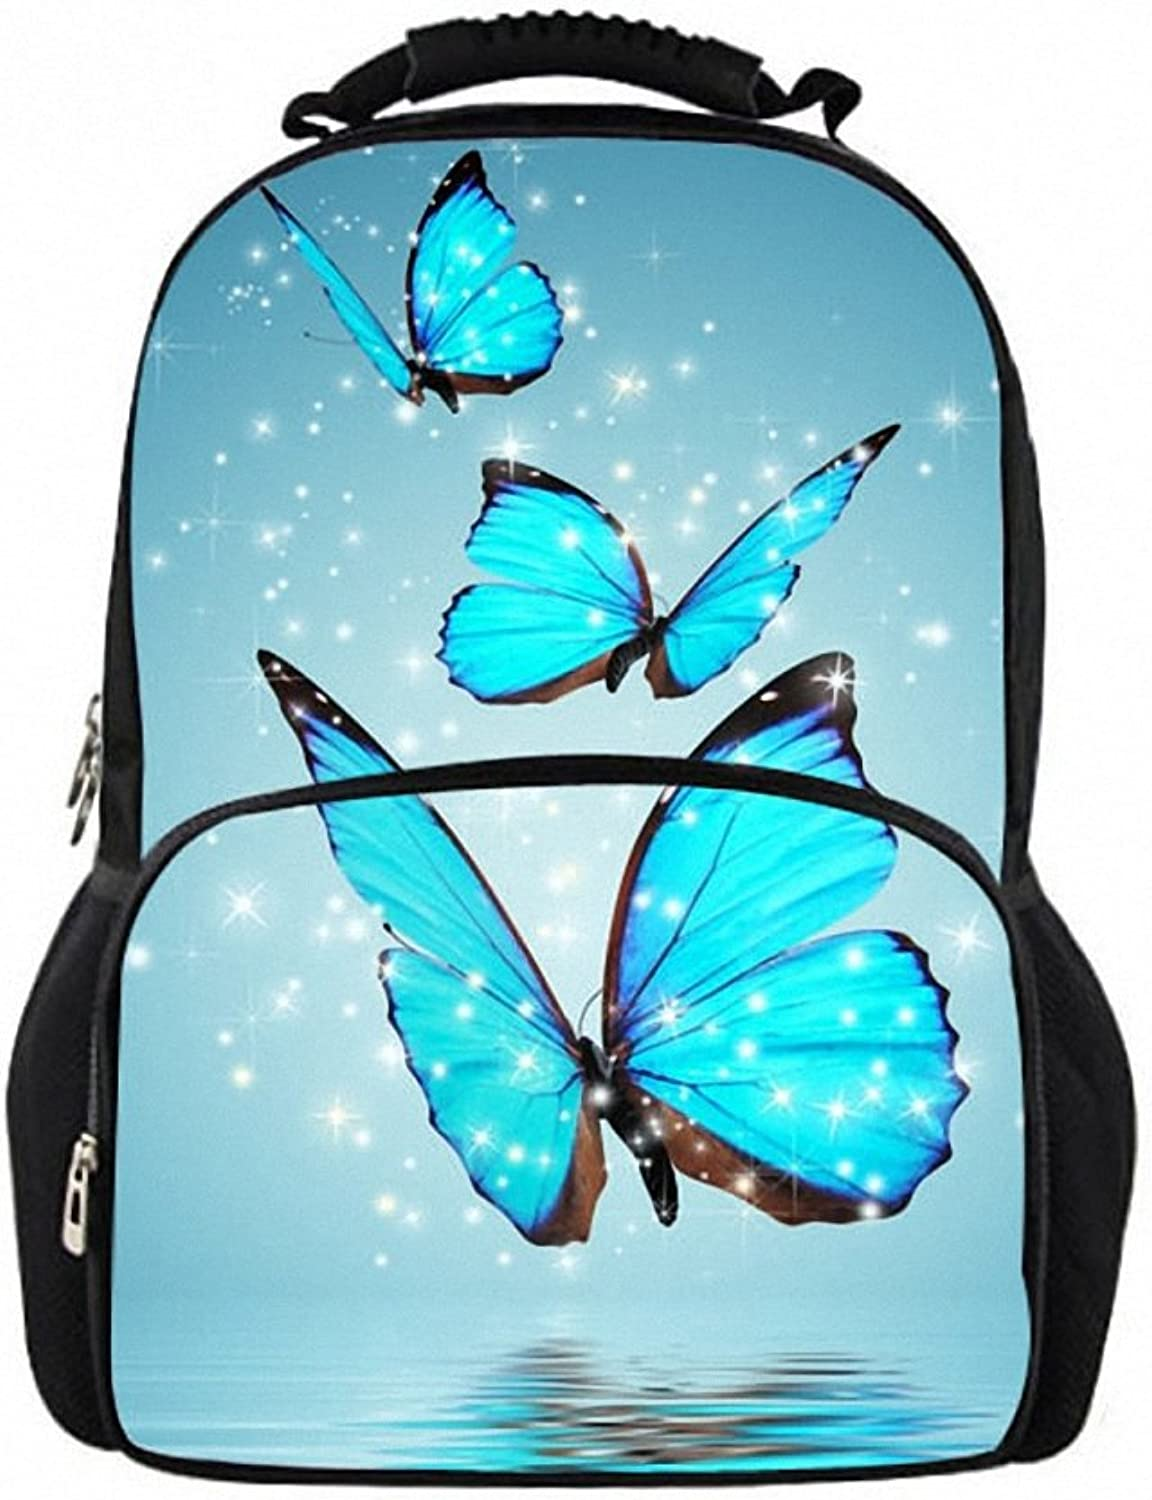 Unisex 3D Backpack Student Bookbag Travel Laptop School Bag Butterfly Teenager Girls Daypack Female Casual Laptop Teenagers W3951A 44x31x18 cm